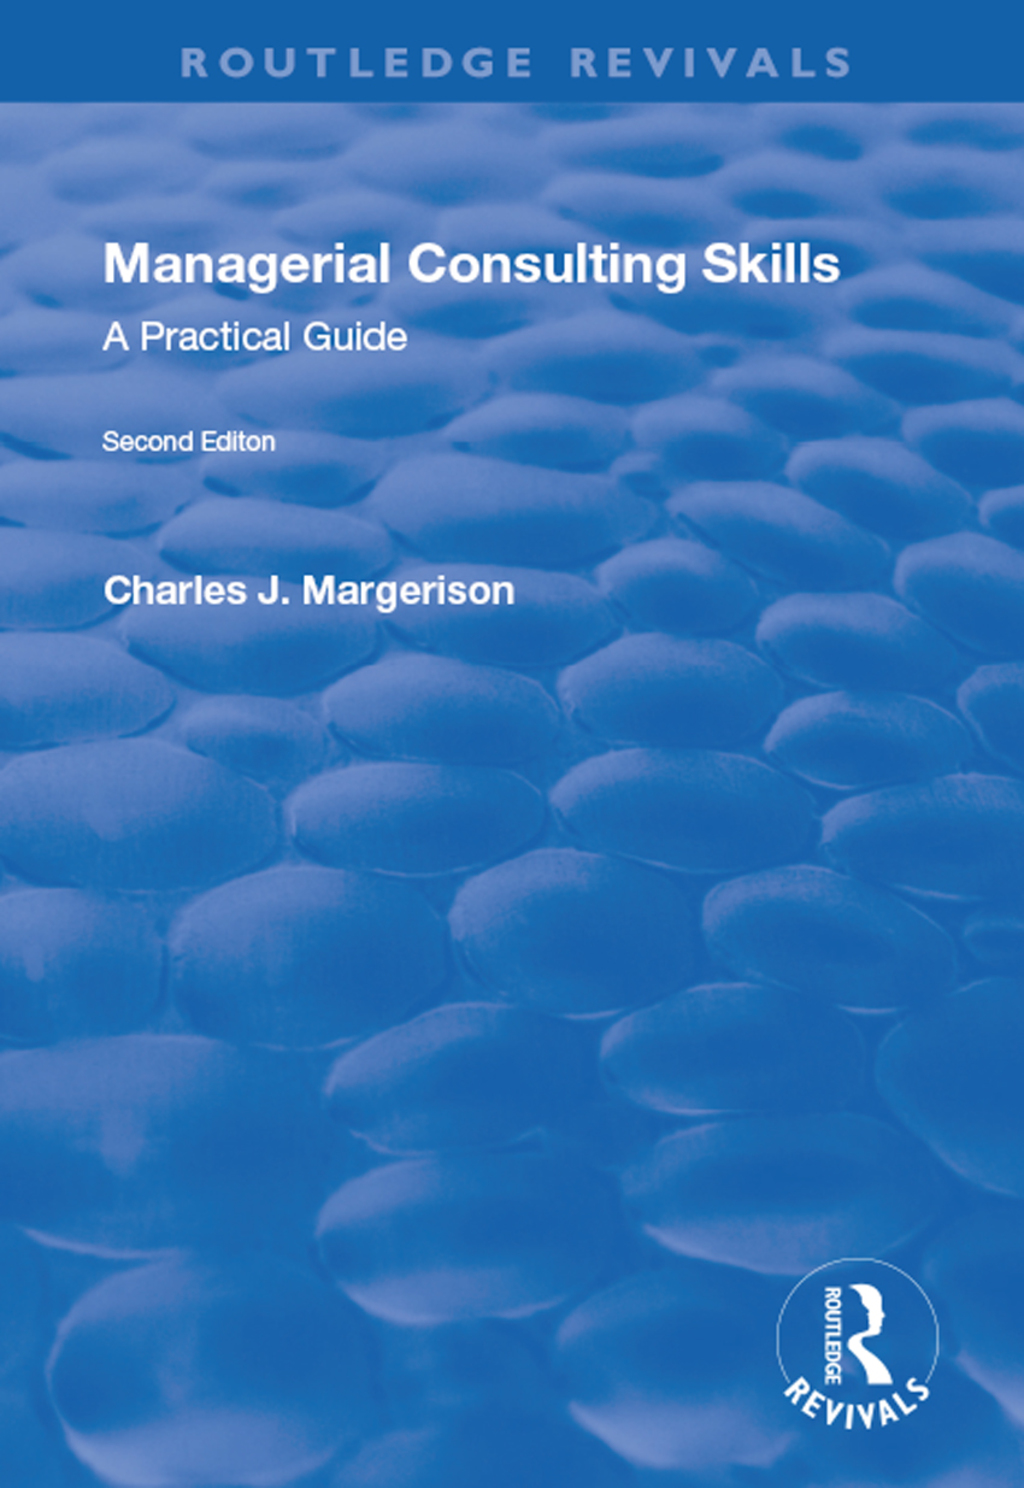 Managerial Consulting Skills: A Practical Guide (eBook Rental)